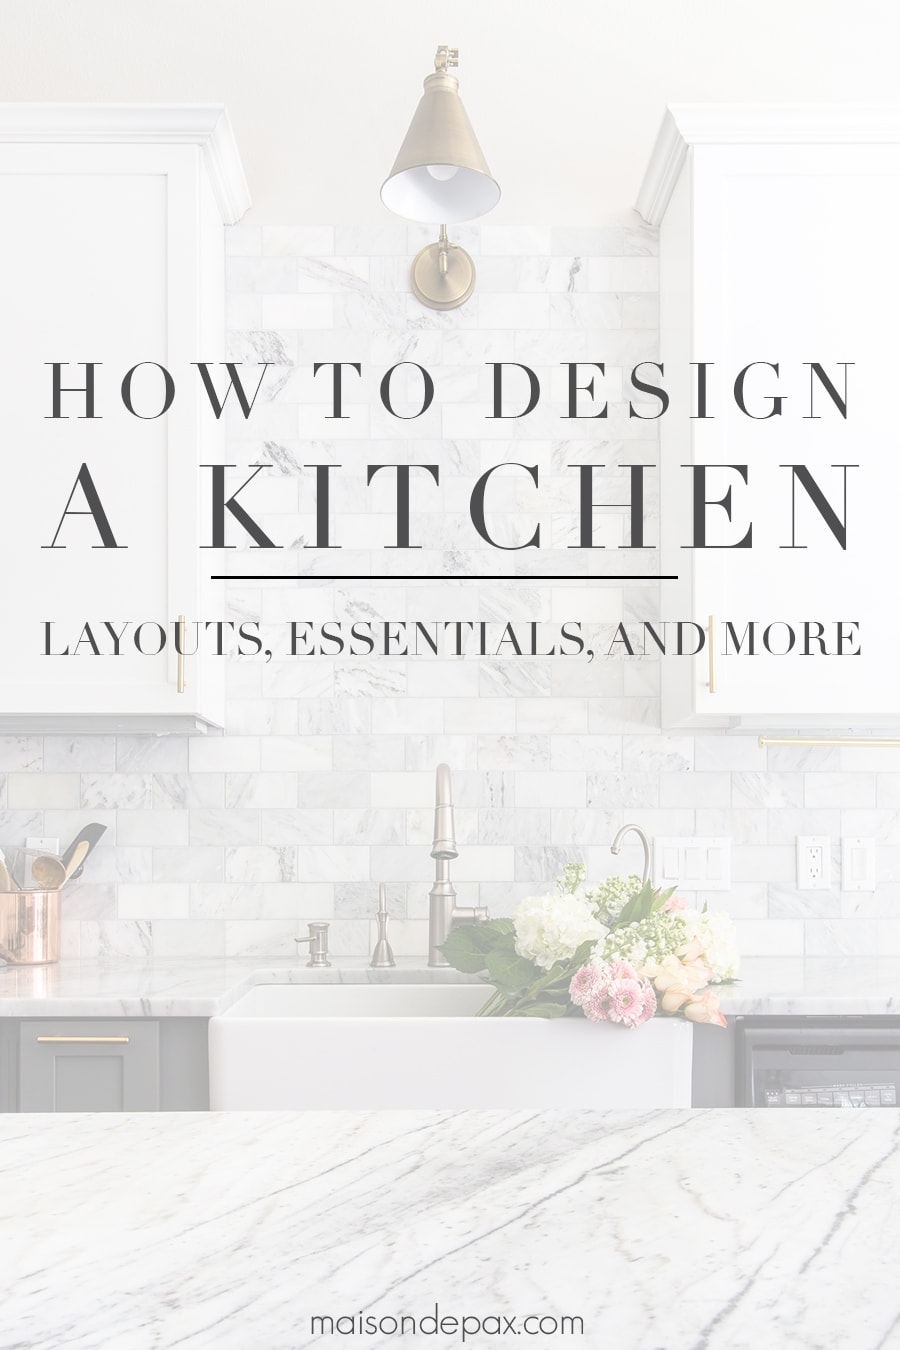 beautiful kitchen with text overlay: how to design a kitchen